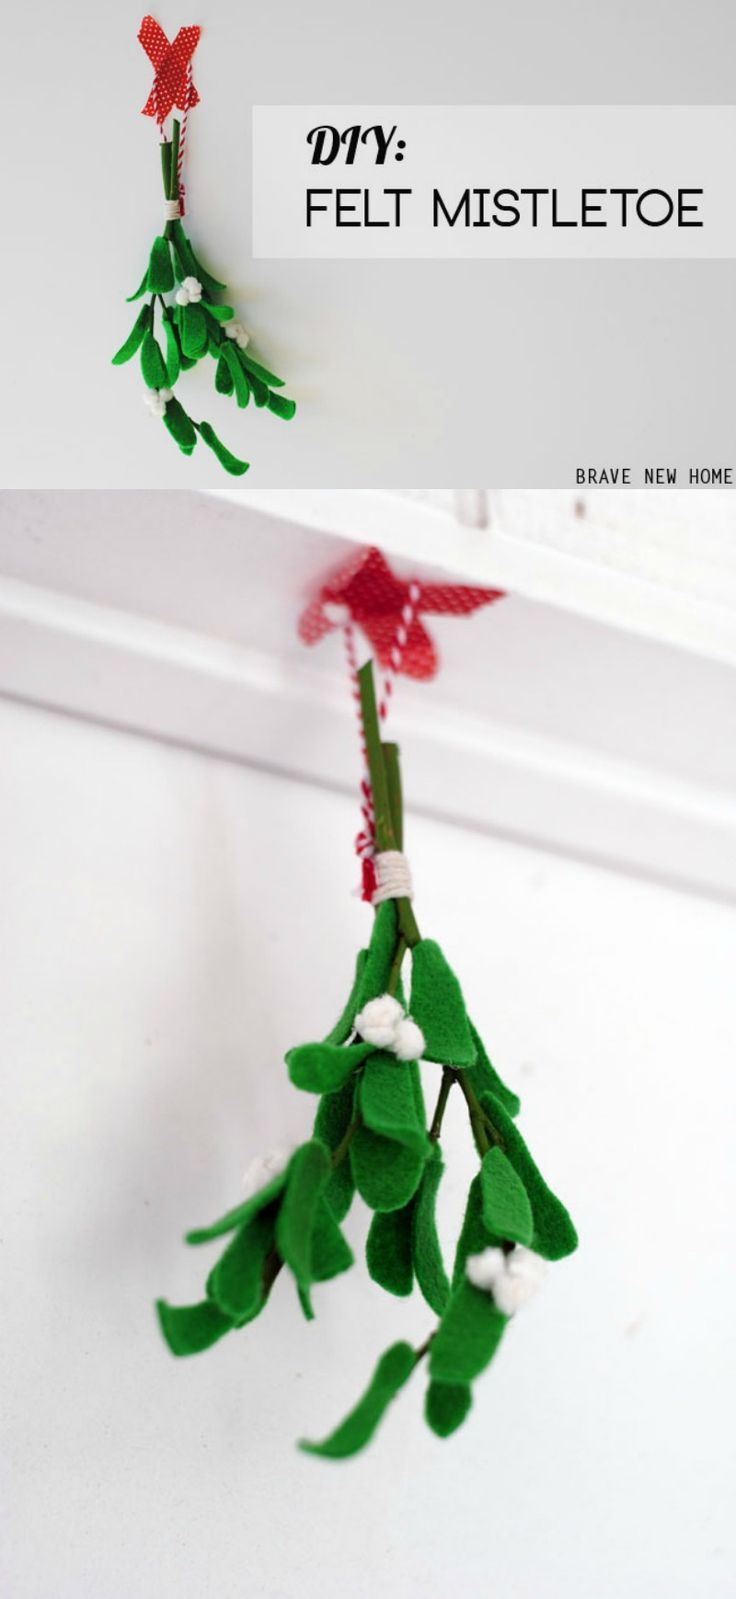 Learn how to create a holiday classic with this DIY felt mistletoe tutorial, courtesy of DIY Candy. Using twigs from your backyard, this faux mistletoe is easy and fun. Plus, it lasts for years!